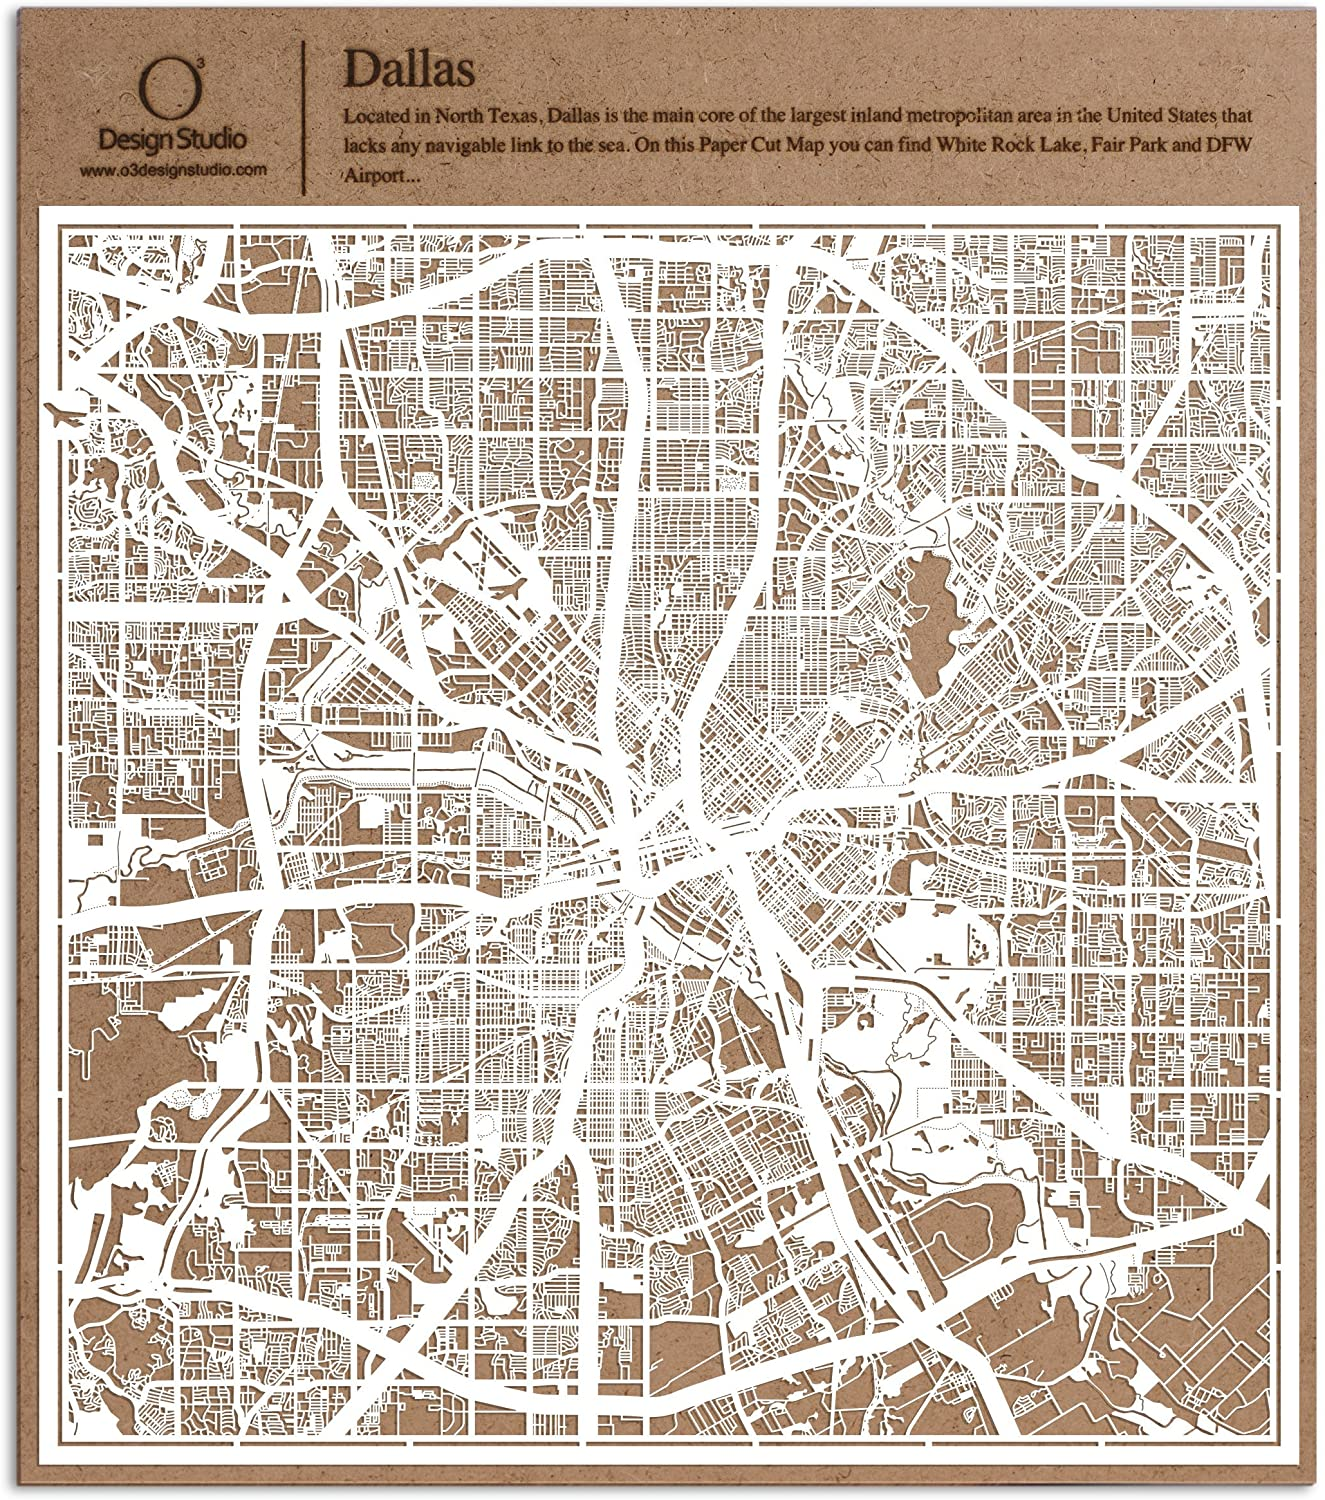 Dallas Paper Cut Map by O3 Design Studio White 12x12 inches Paper Art